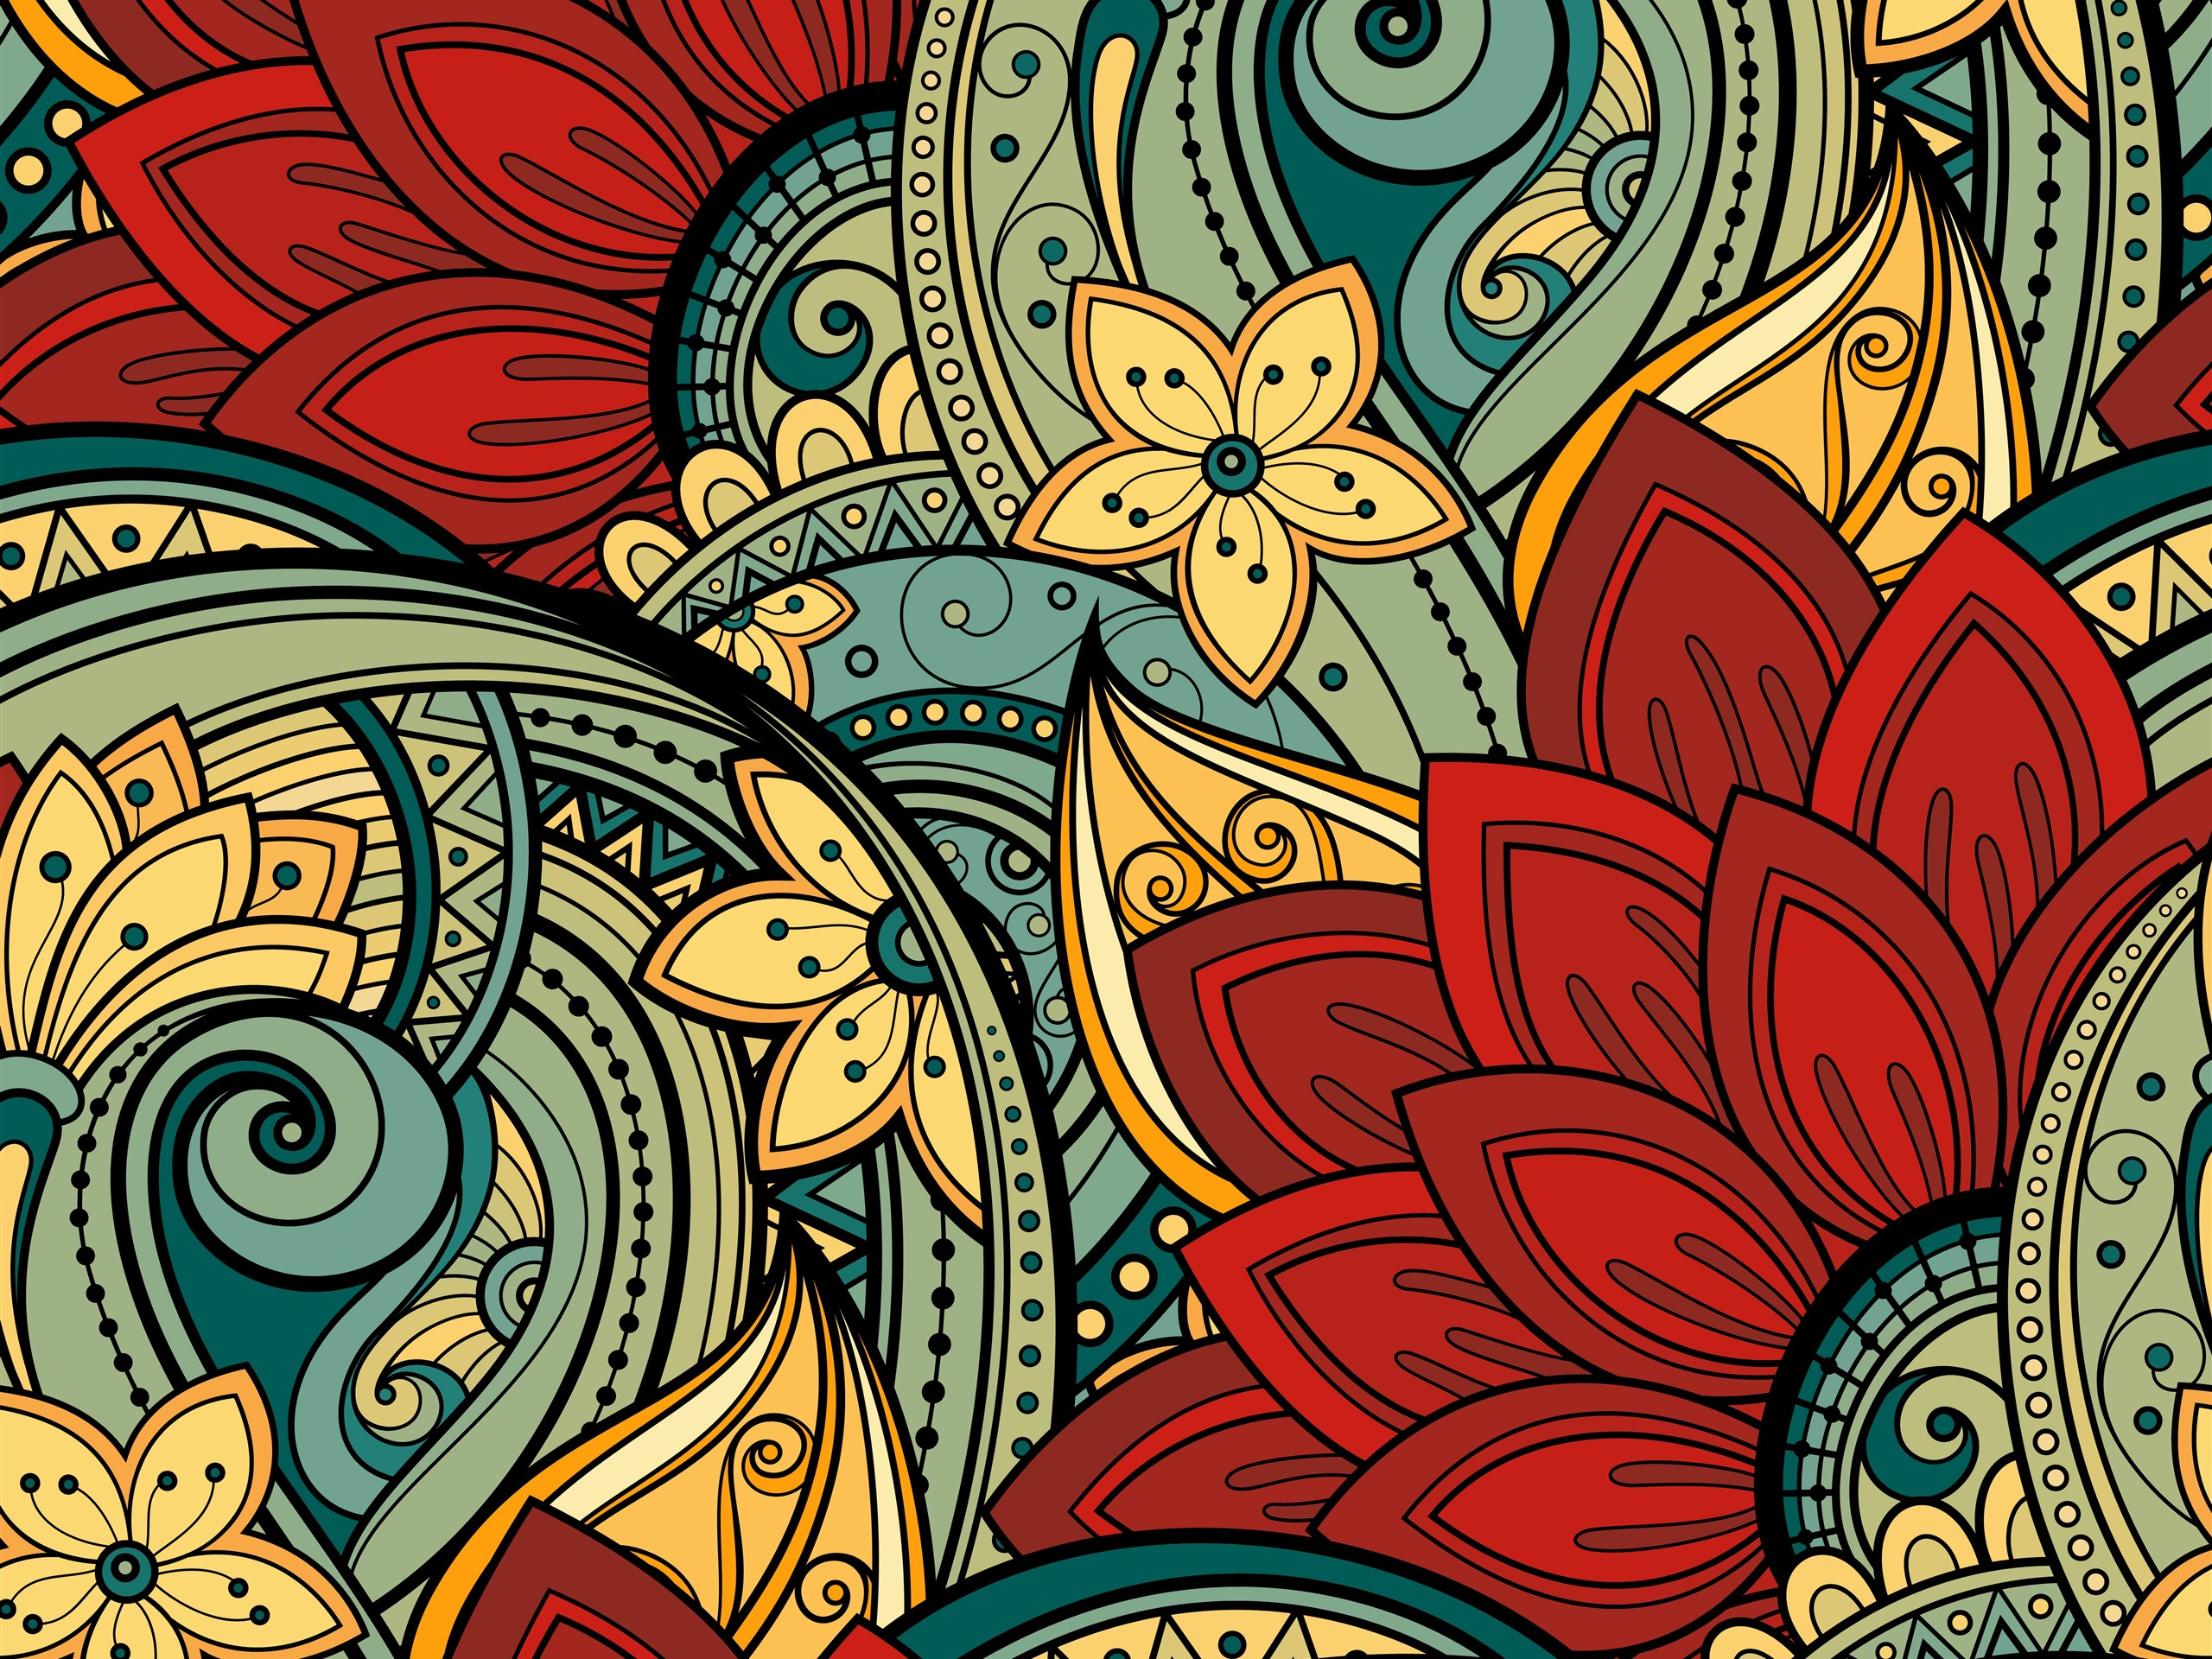 Wallpaper Abstract Flowers Art Picture 5120x2880 Uhd 5k Picture